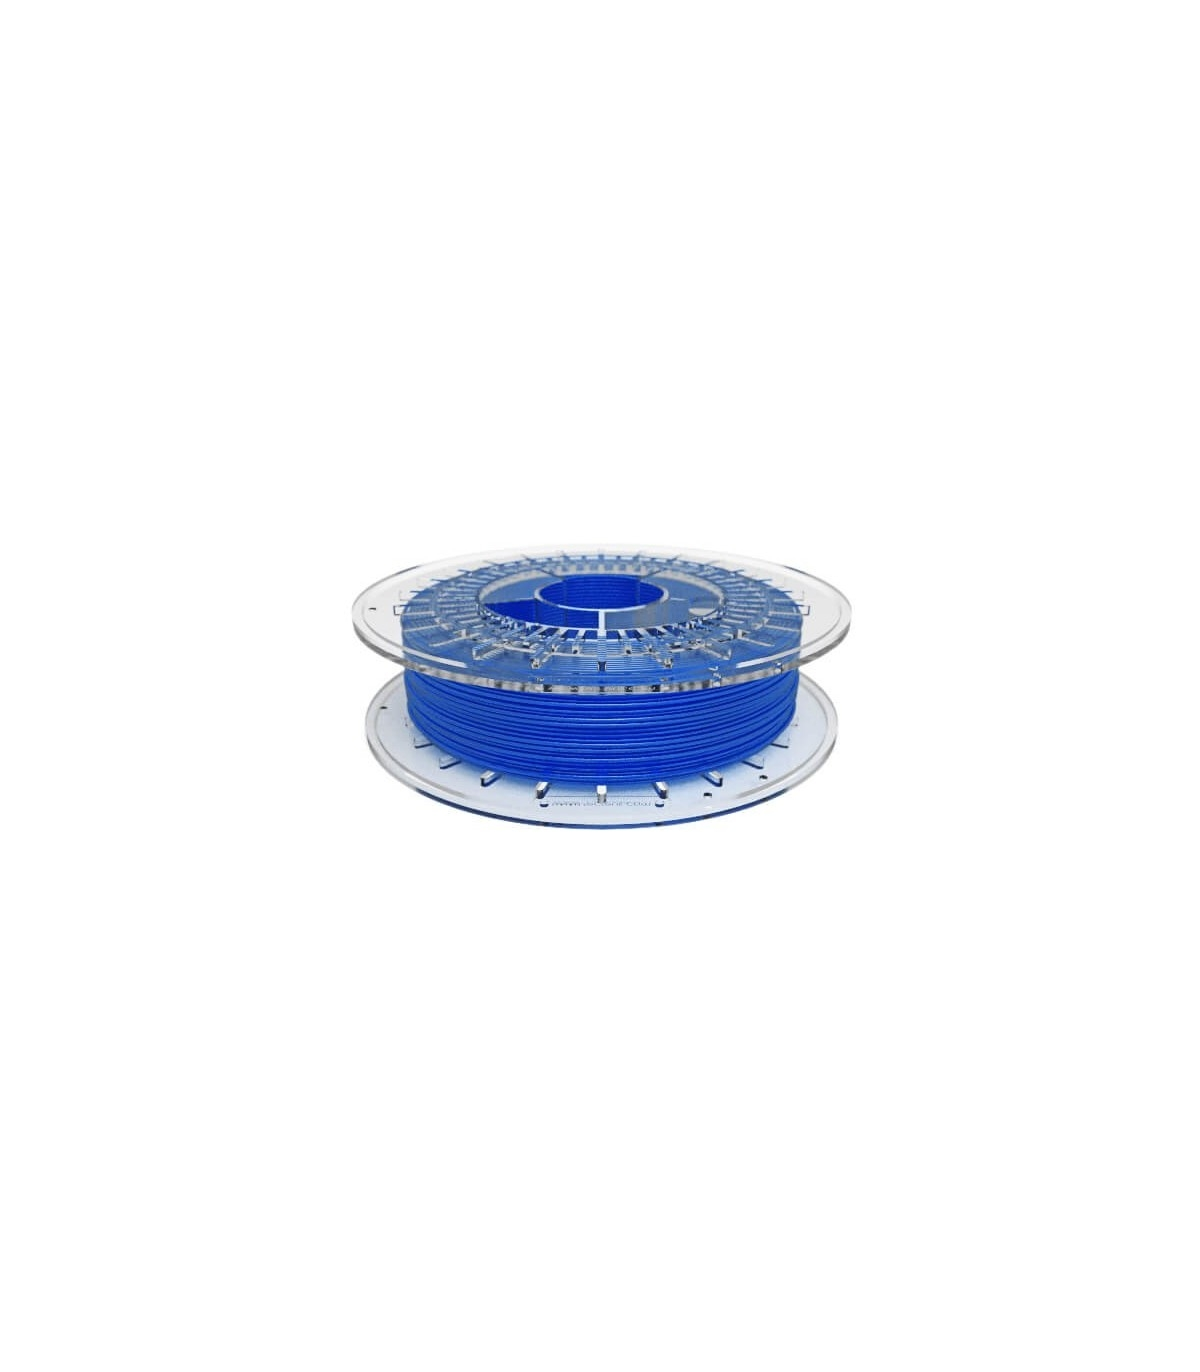 FilaFlex Clear blue 82A TPE Filament 1.75 mm 500g